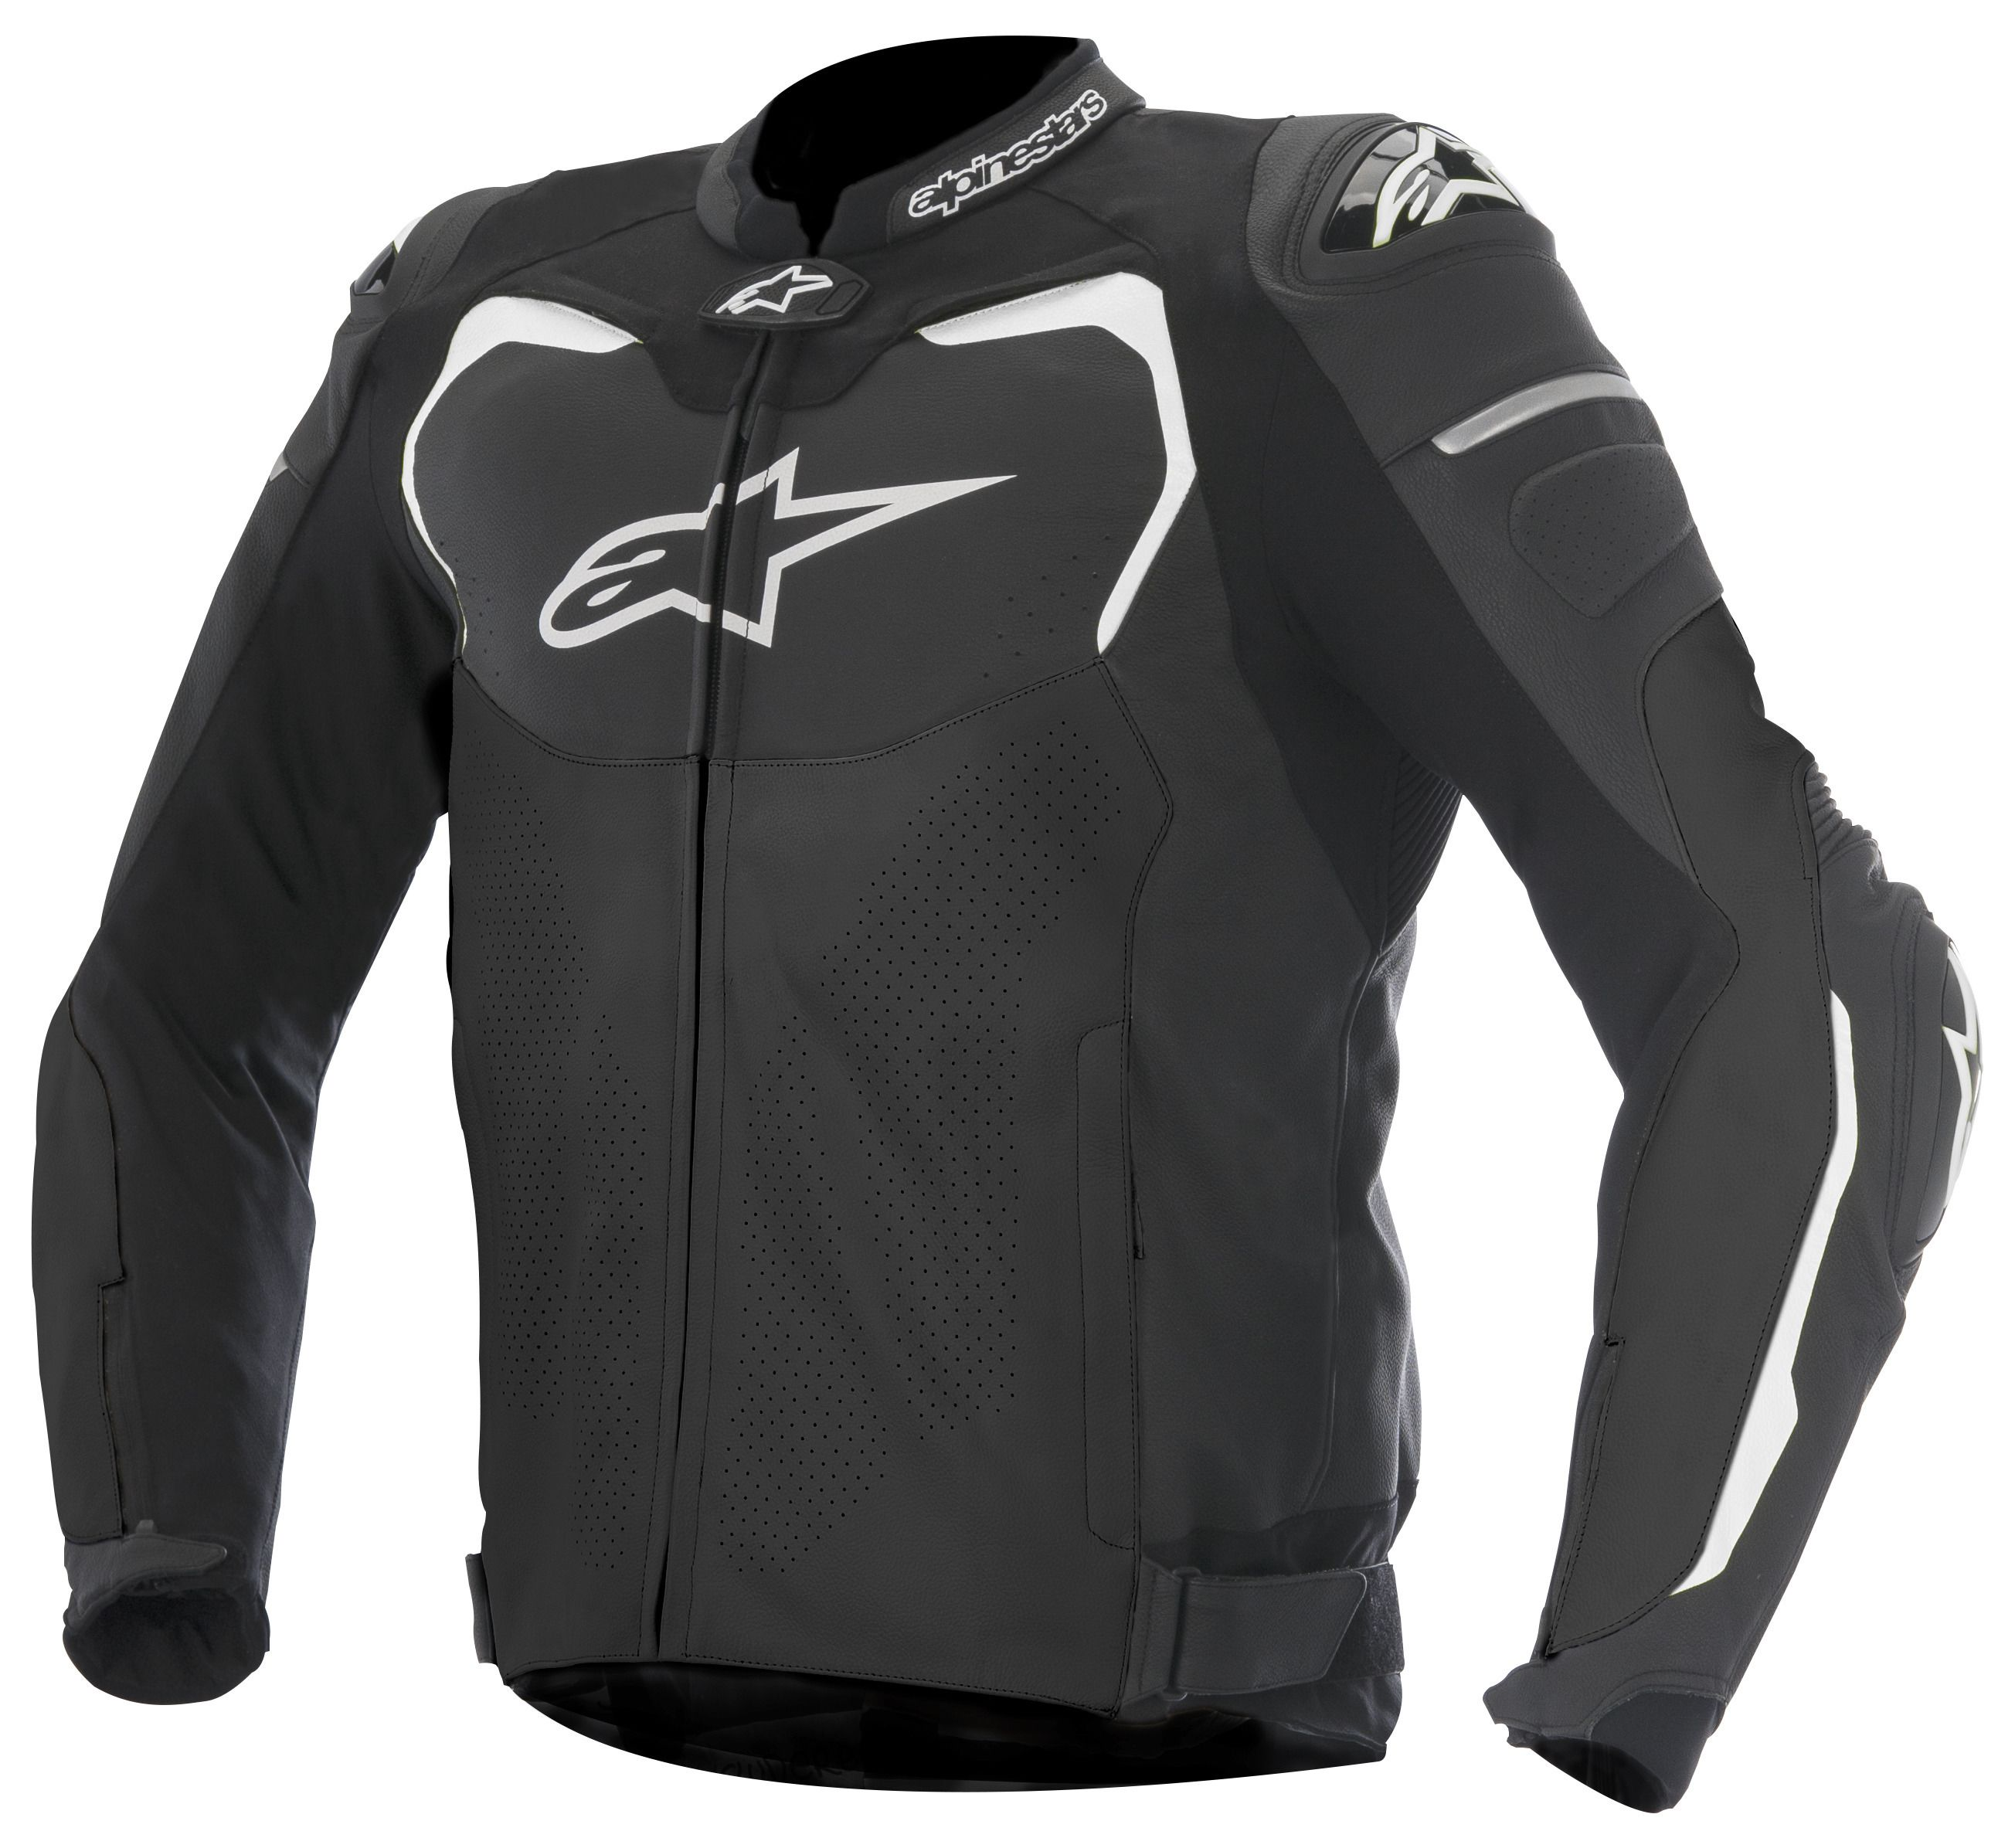 Alpinestars Jacket Leather >> Alpinestars Gp Pro Airflow Leather Jacket Cycle Gear